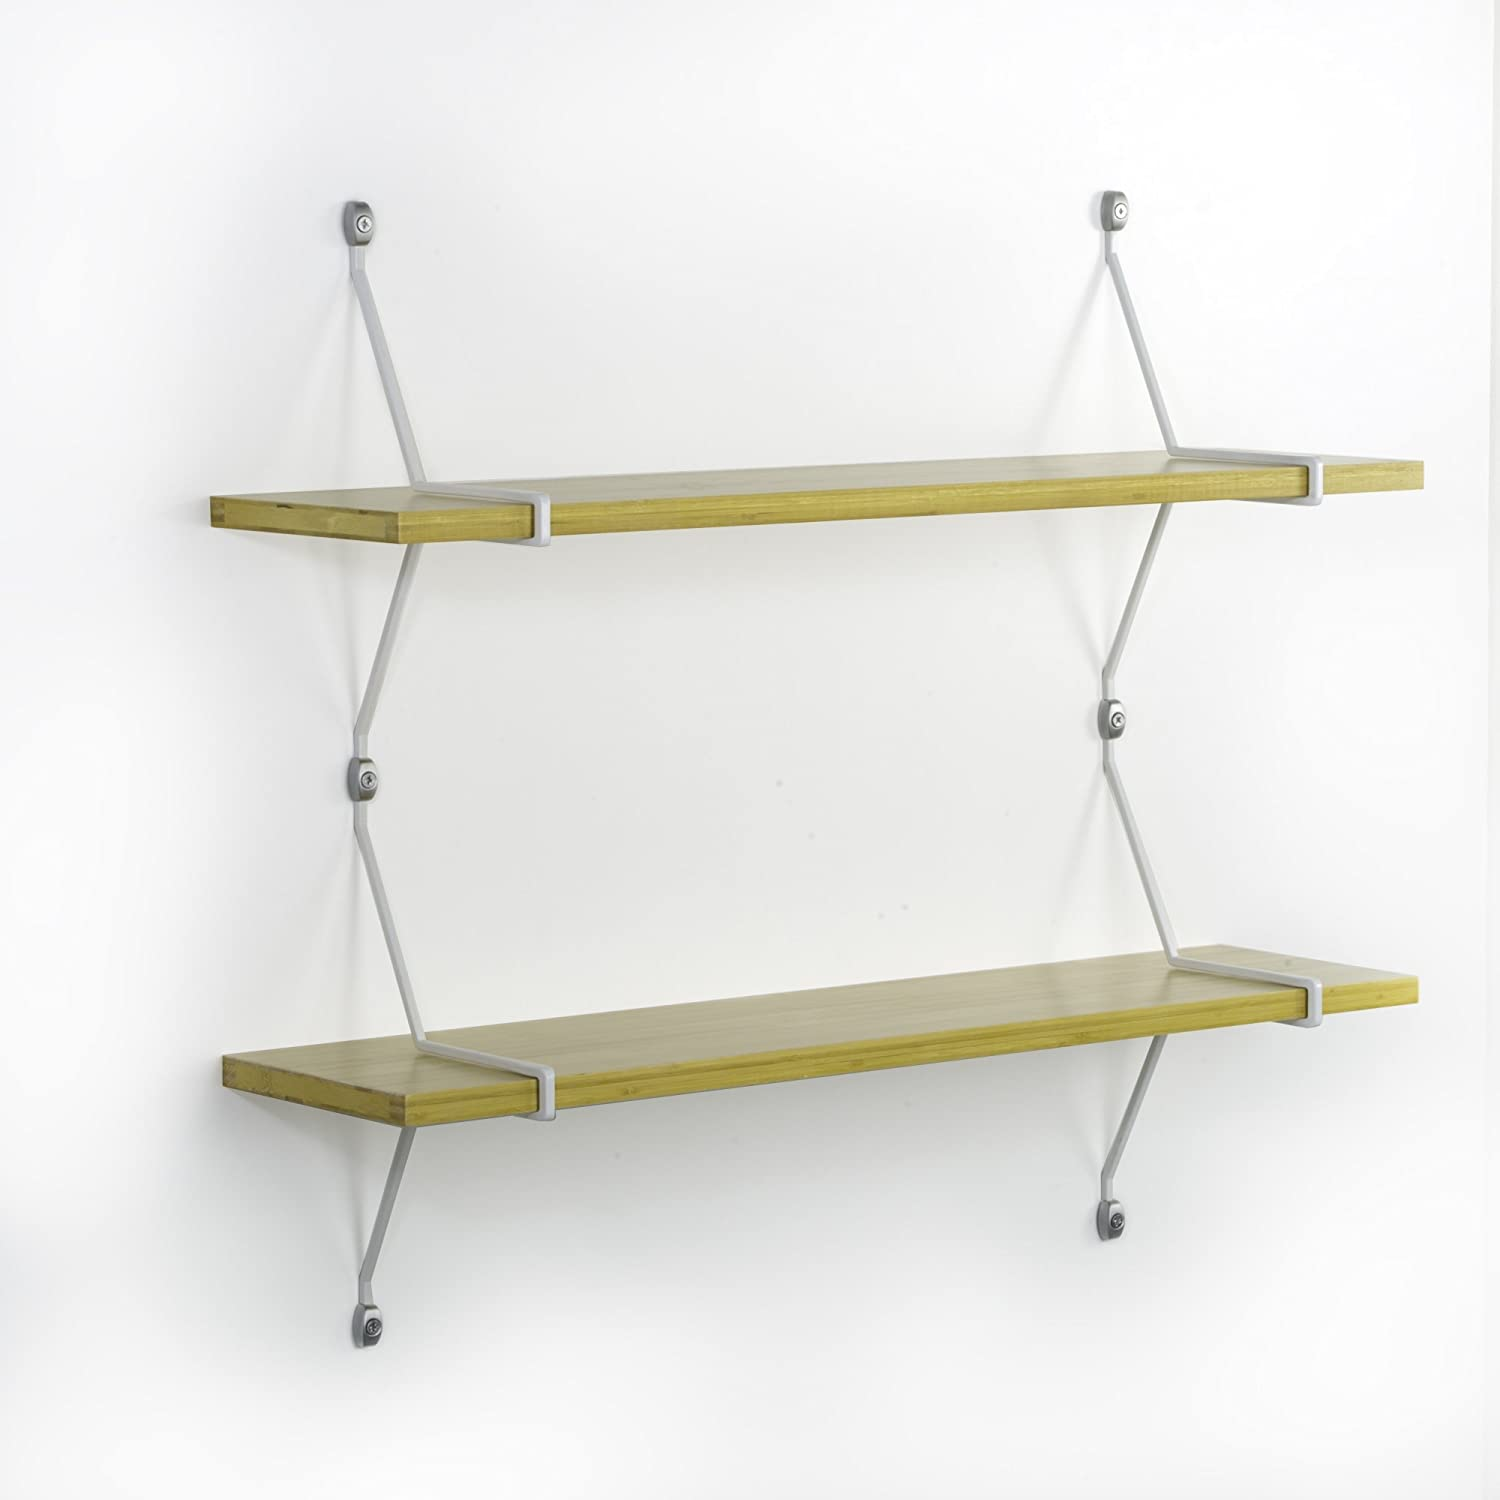 Assa Design Decorative Shelf Kit Set of Two Wall Mounted Bamboo Shelves with Diagonal Mounting Brackets